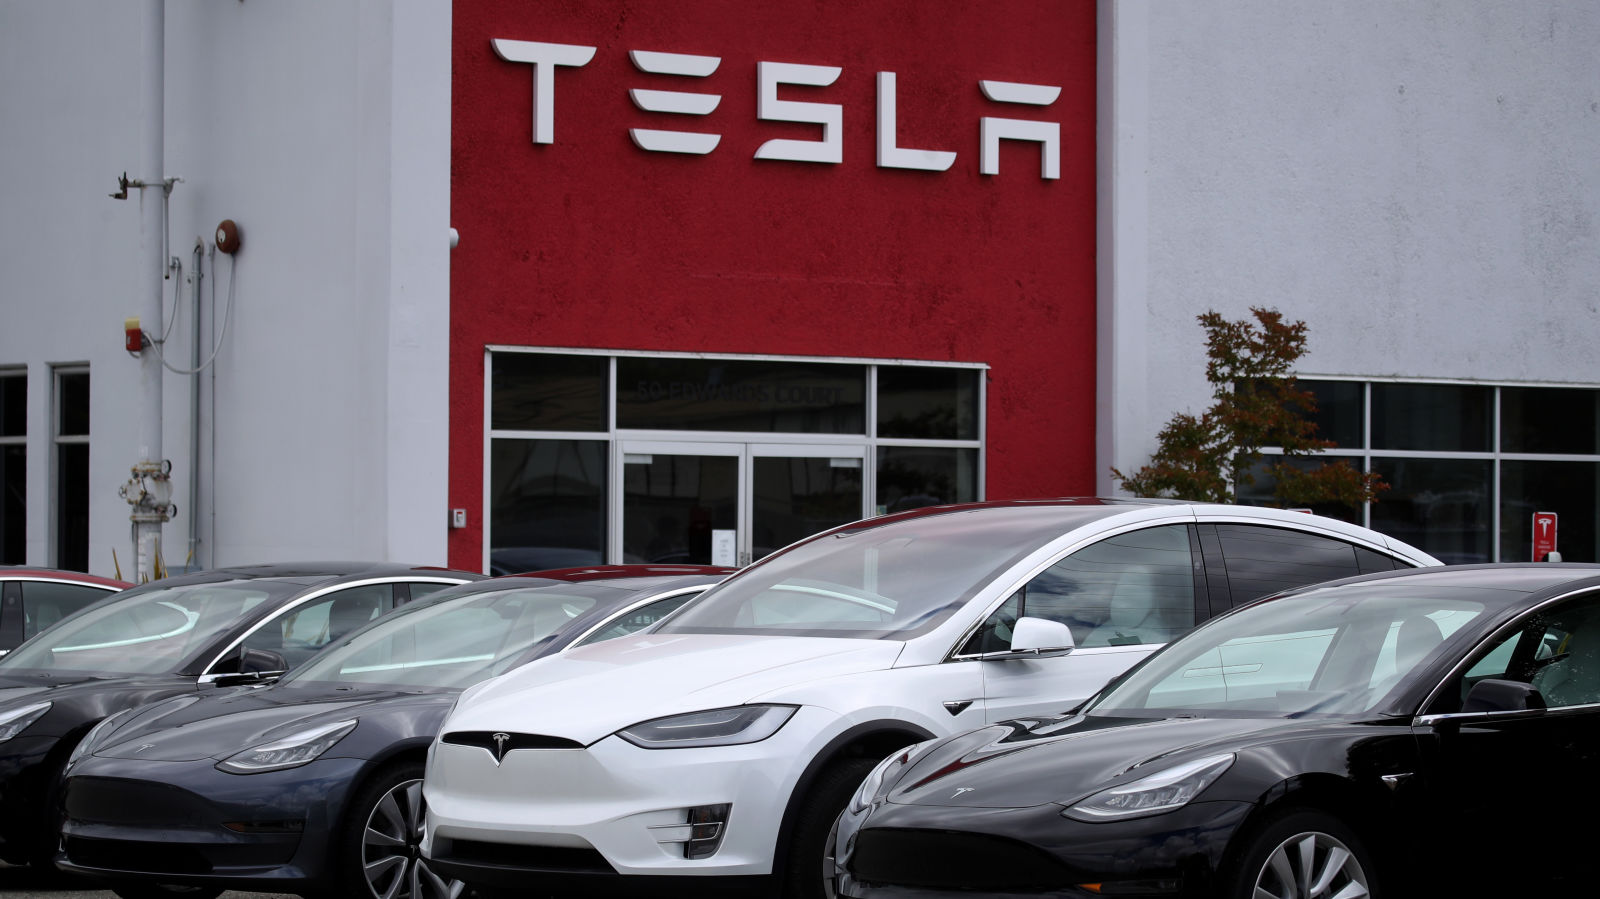 Tesla wins case against former employee accused of hacking, transferring data